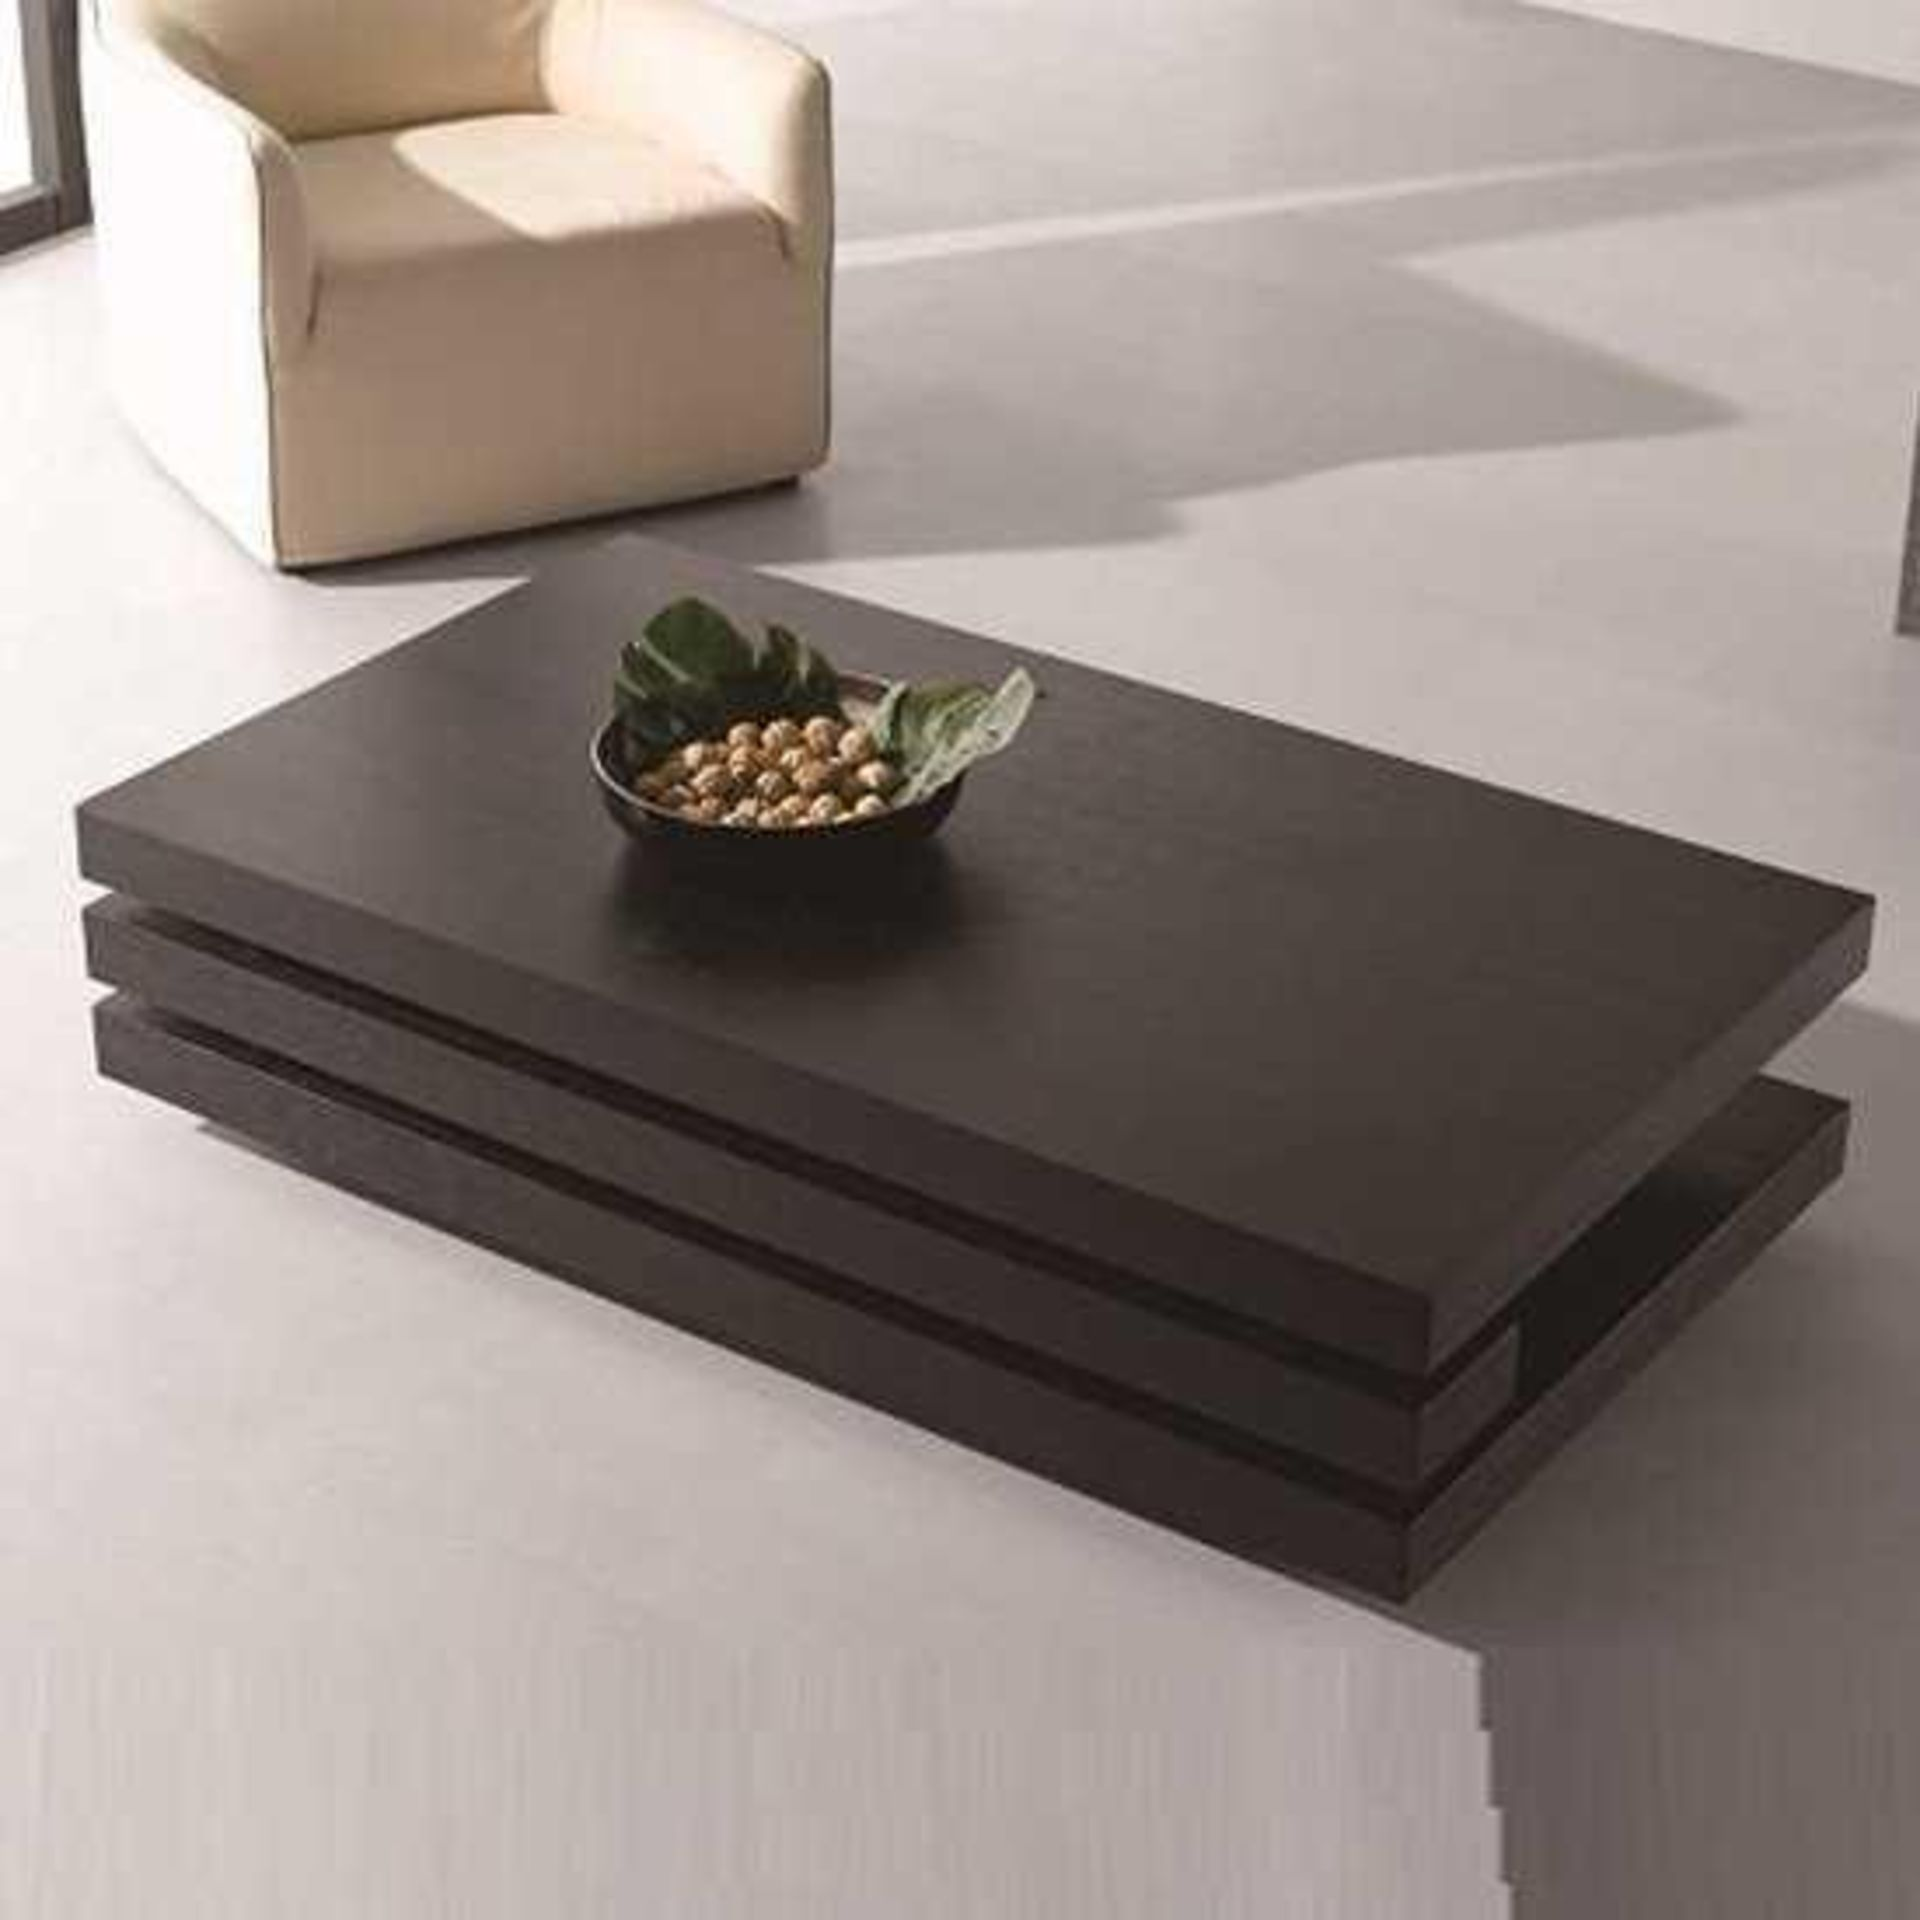 RRP £270 - Boxed 'Palma' Rectangular Coffee Table In Black Oak Veneer